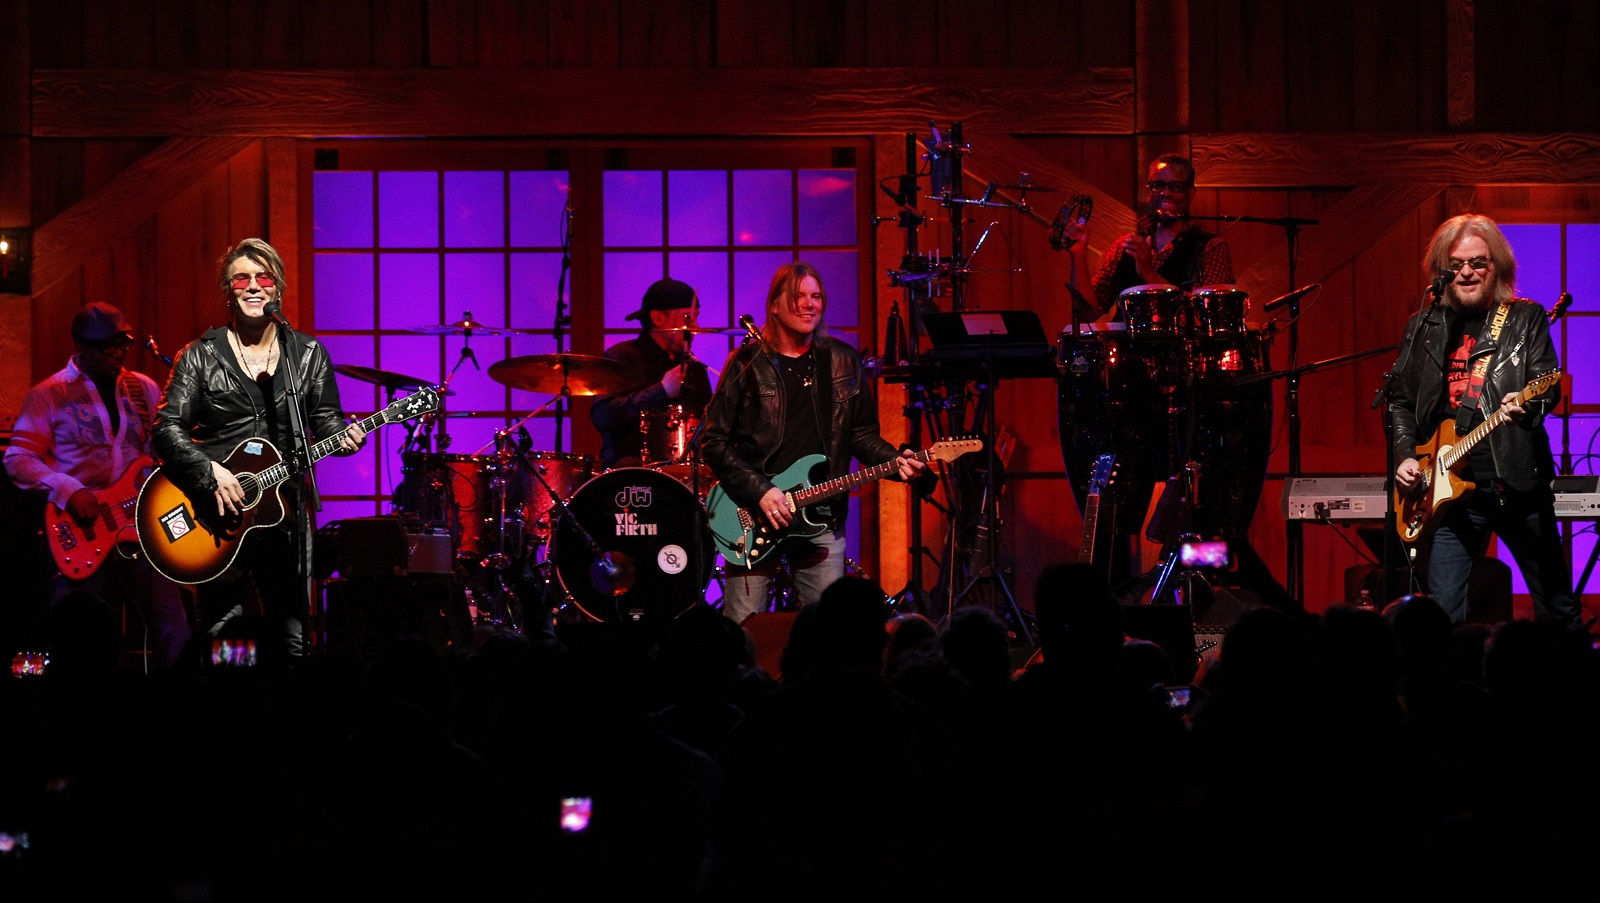 Daryl Hall, right, and John Rzeznik, left, of the Goo Goo Dolls performed a special show together at the Seneca Niagara Events Center. (Sharon Cantillon/Buffalo News)